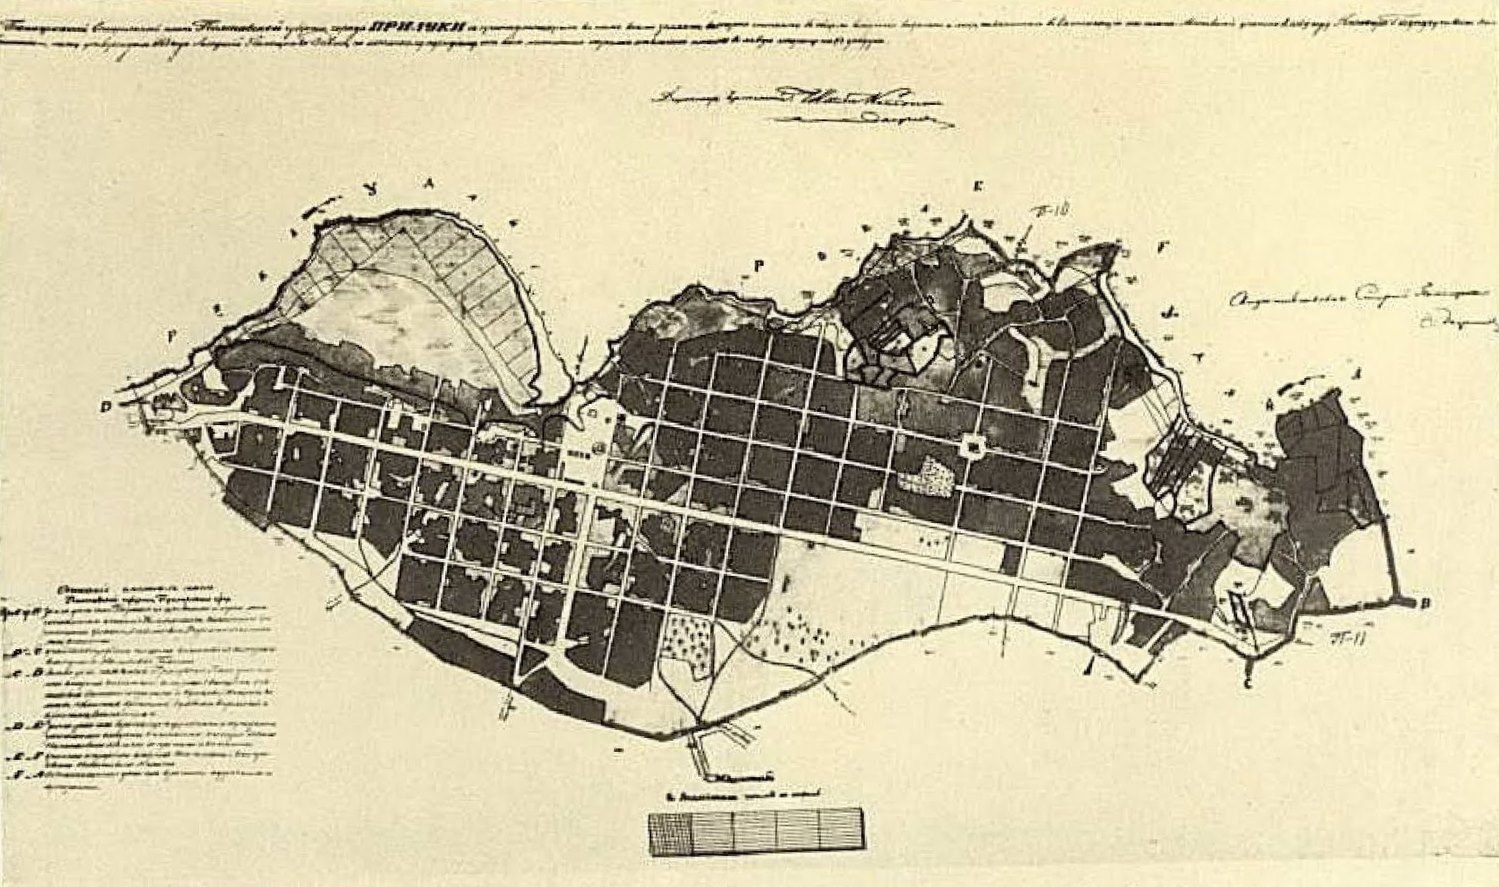 City plan by 1859-1863